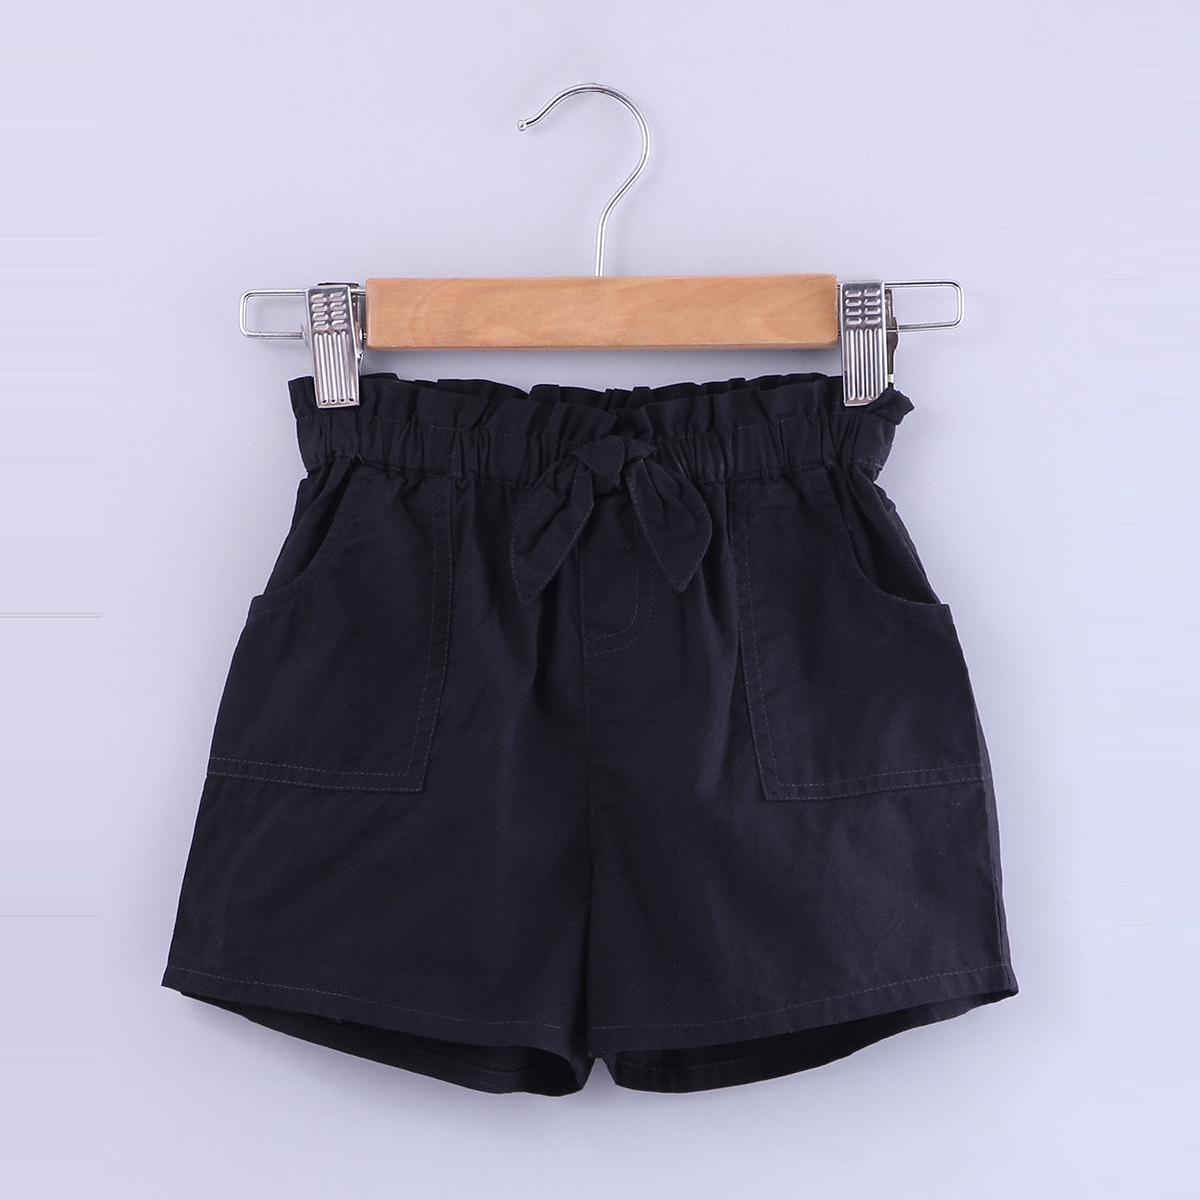 Beebay - Black Colored Paperbags With Bow Cotton Shorts For Girls